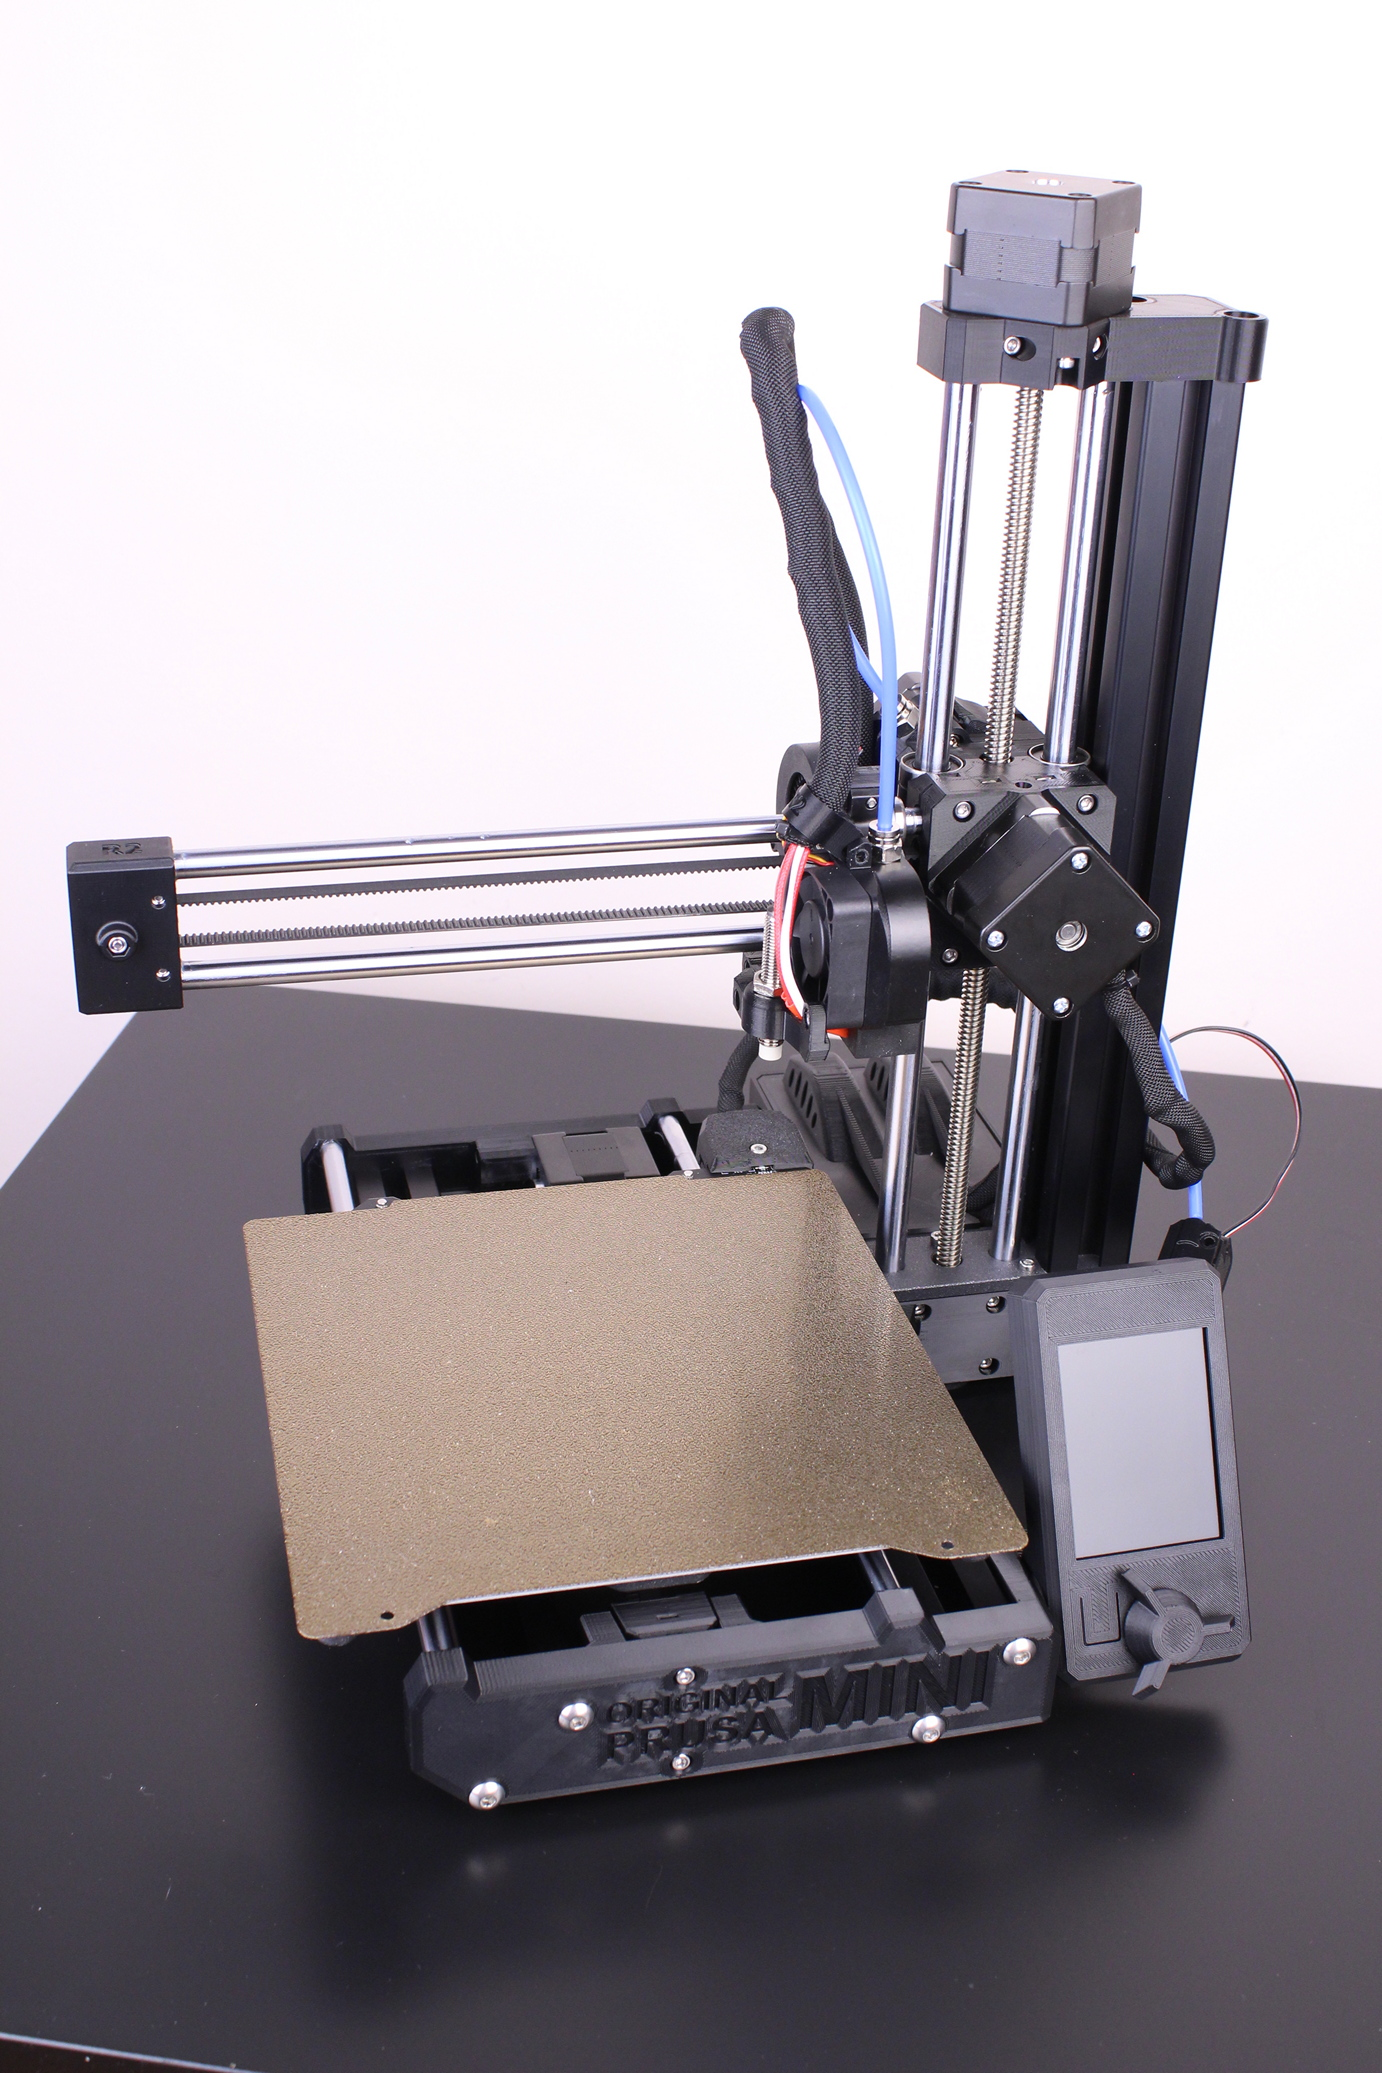 Fysetc-Prusa-Mini-Clone-Review-Build-Quality-2